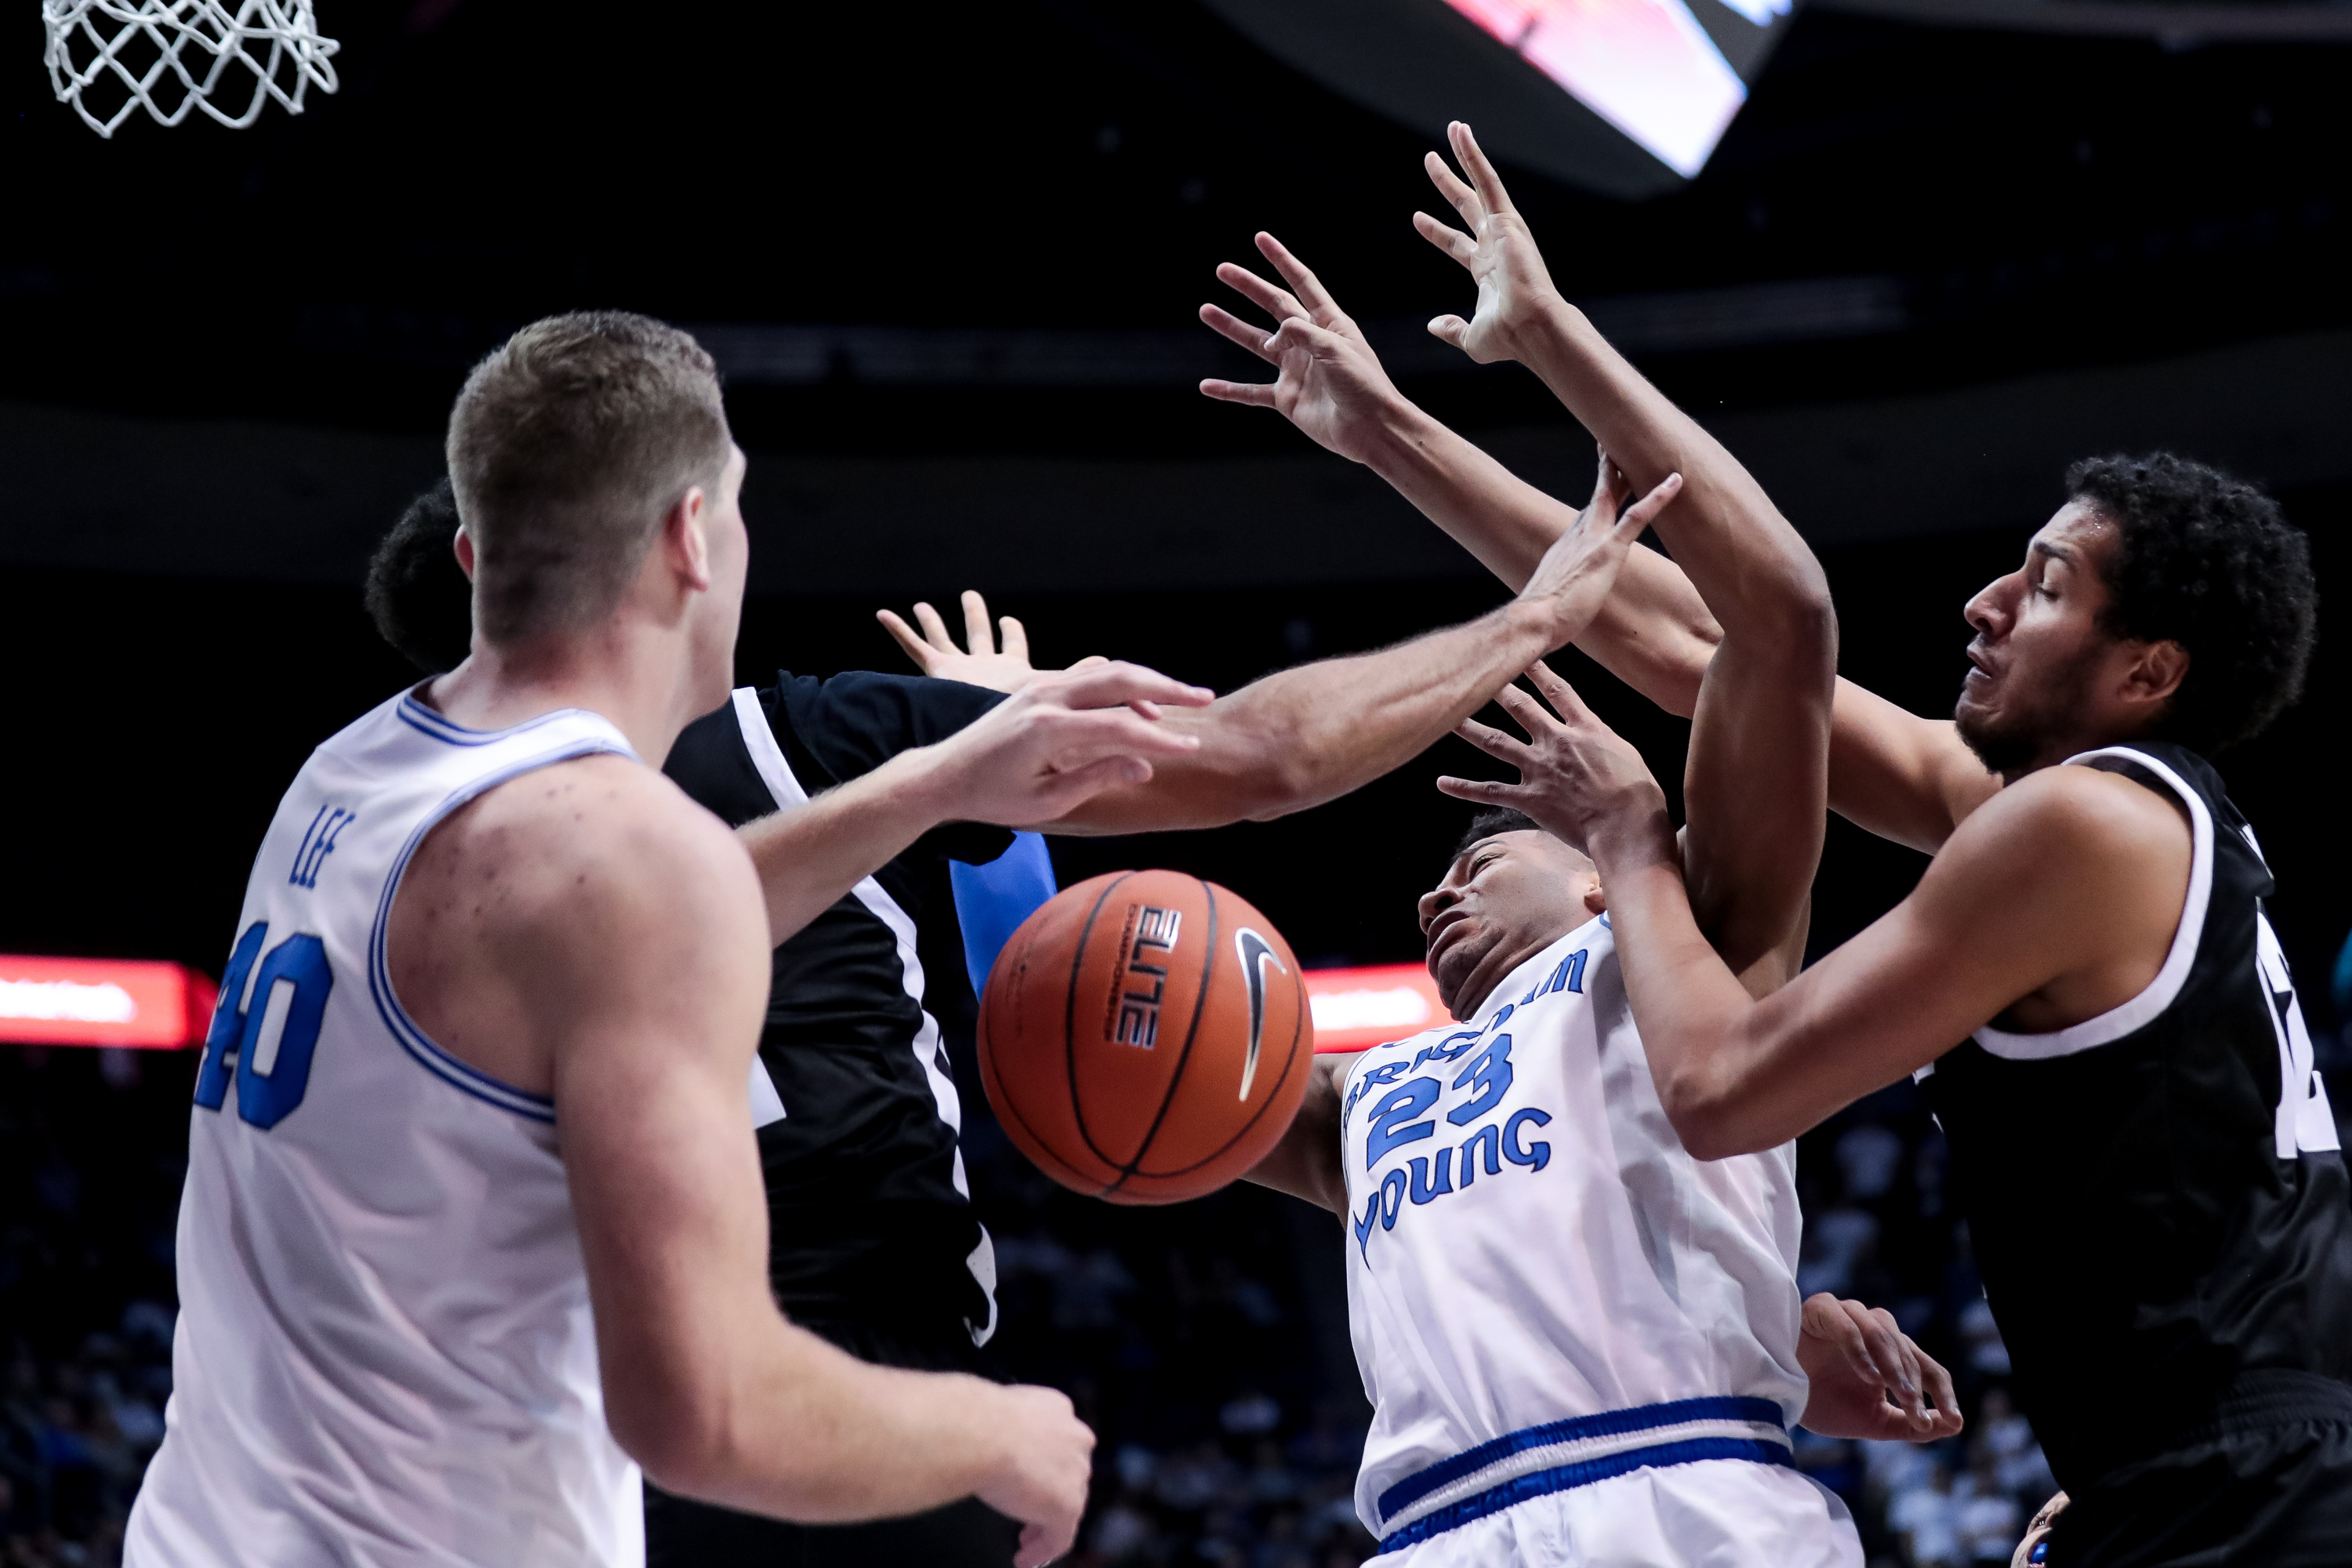 Nevada Wolf Pack forward Johncarlos Reyes (12) fouls Brigham Young Cougars forward Yoeli Childs (23) during the game at the Marriott Center in Provo on Tuesday, Dec. 10, 2019.